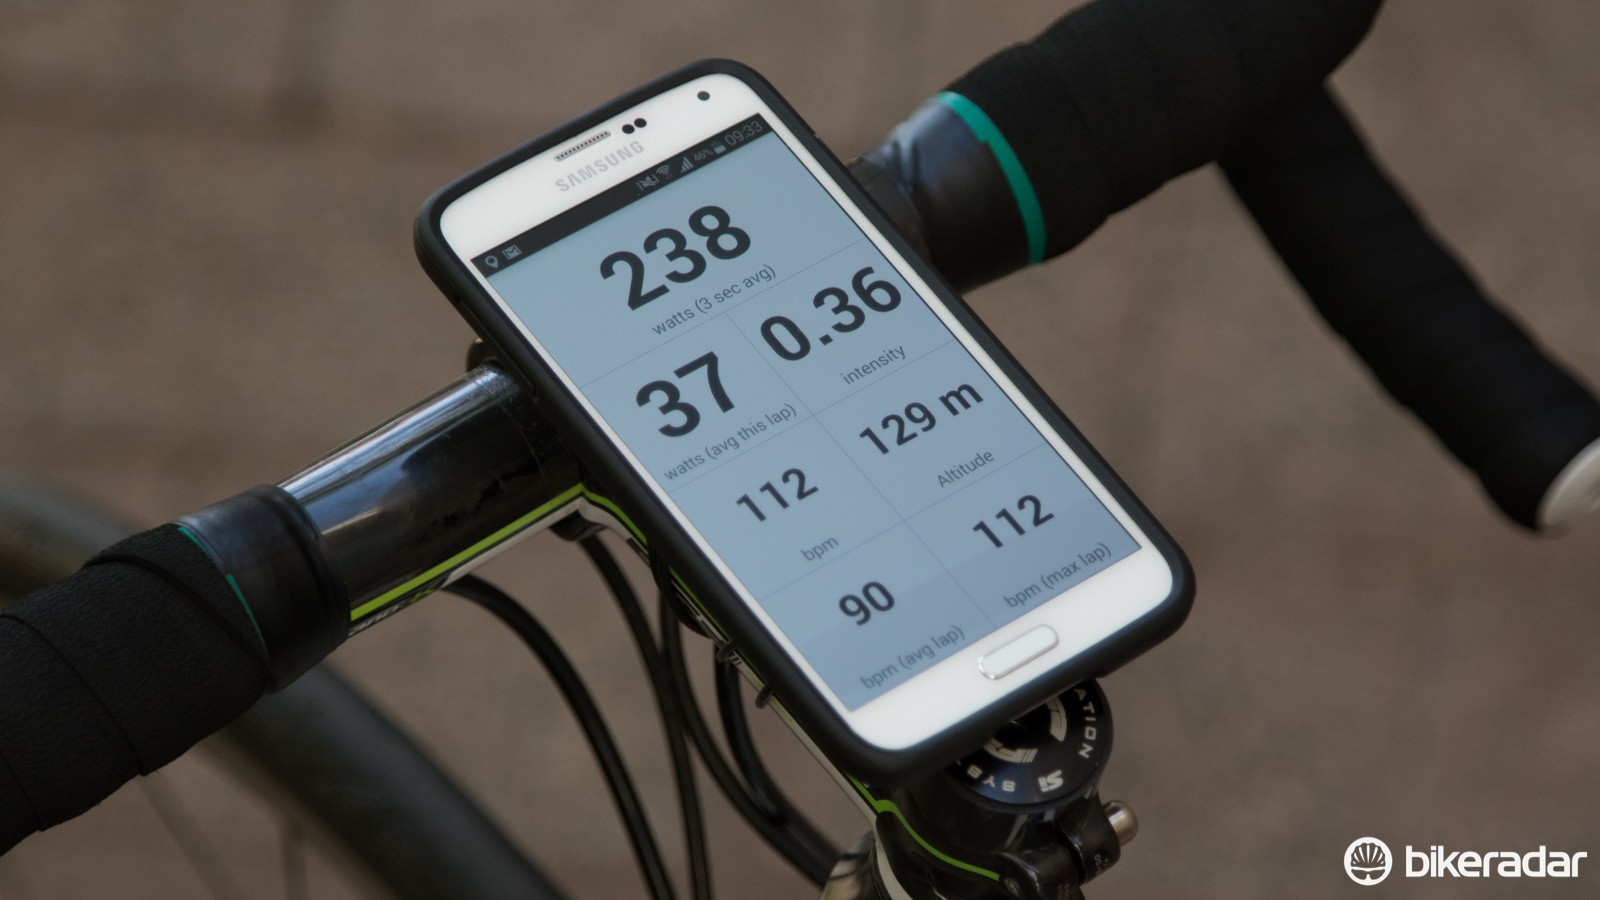 The Today's Plan app can handily turn your smartphone into a bike computer